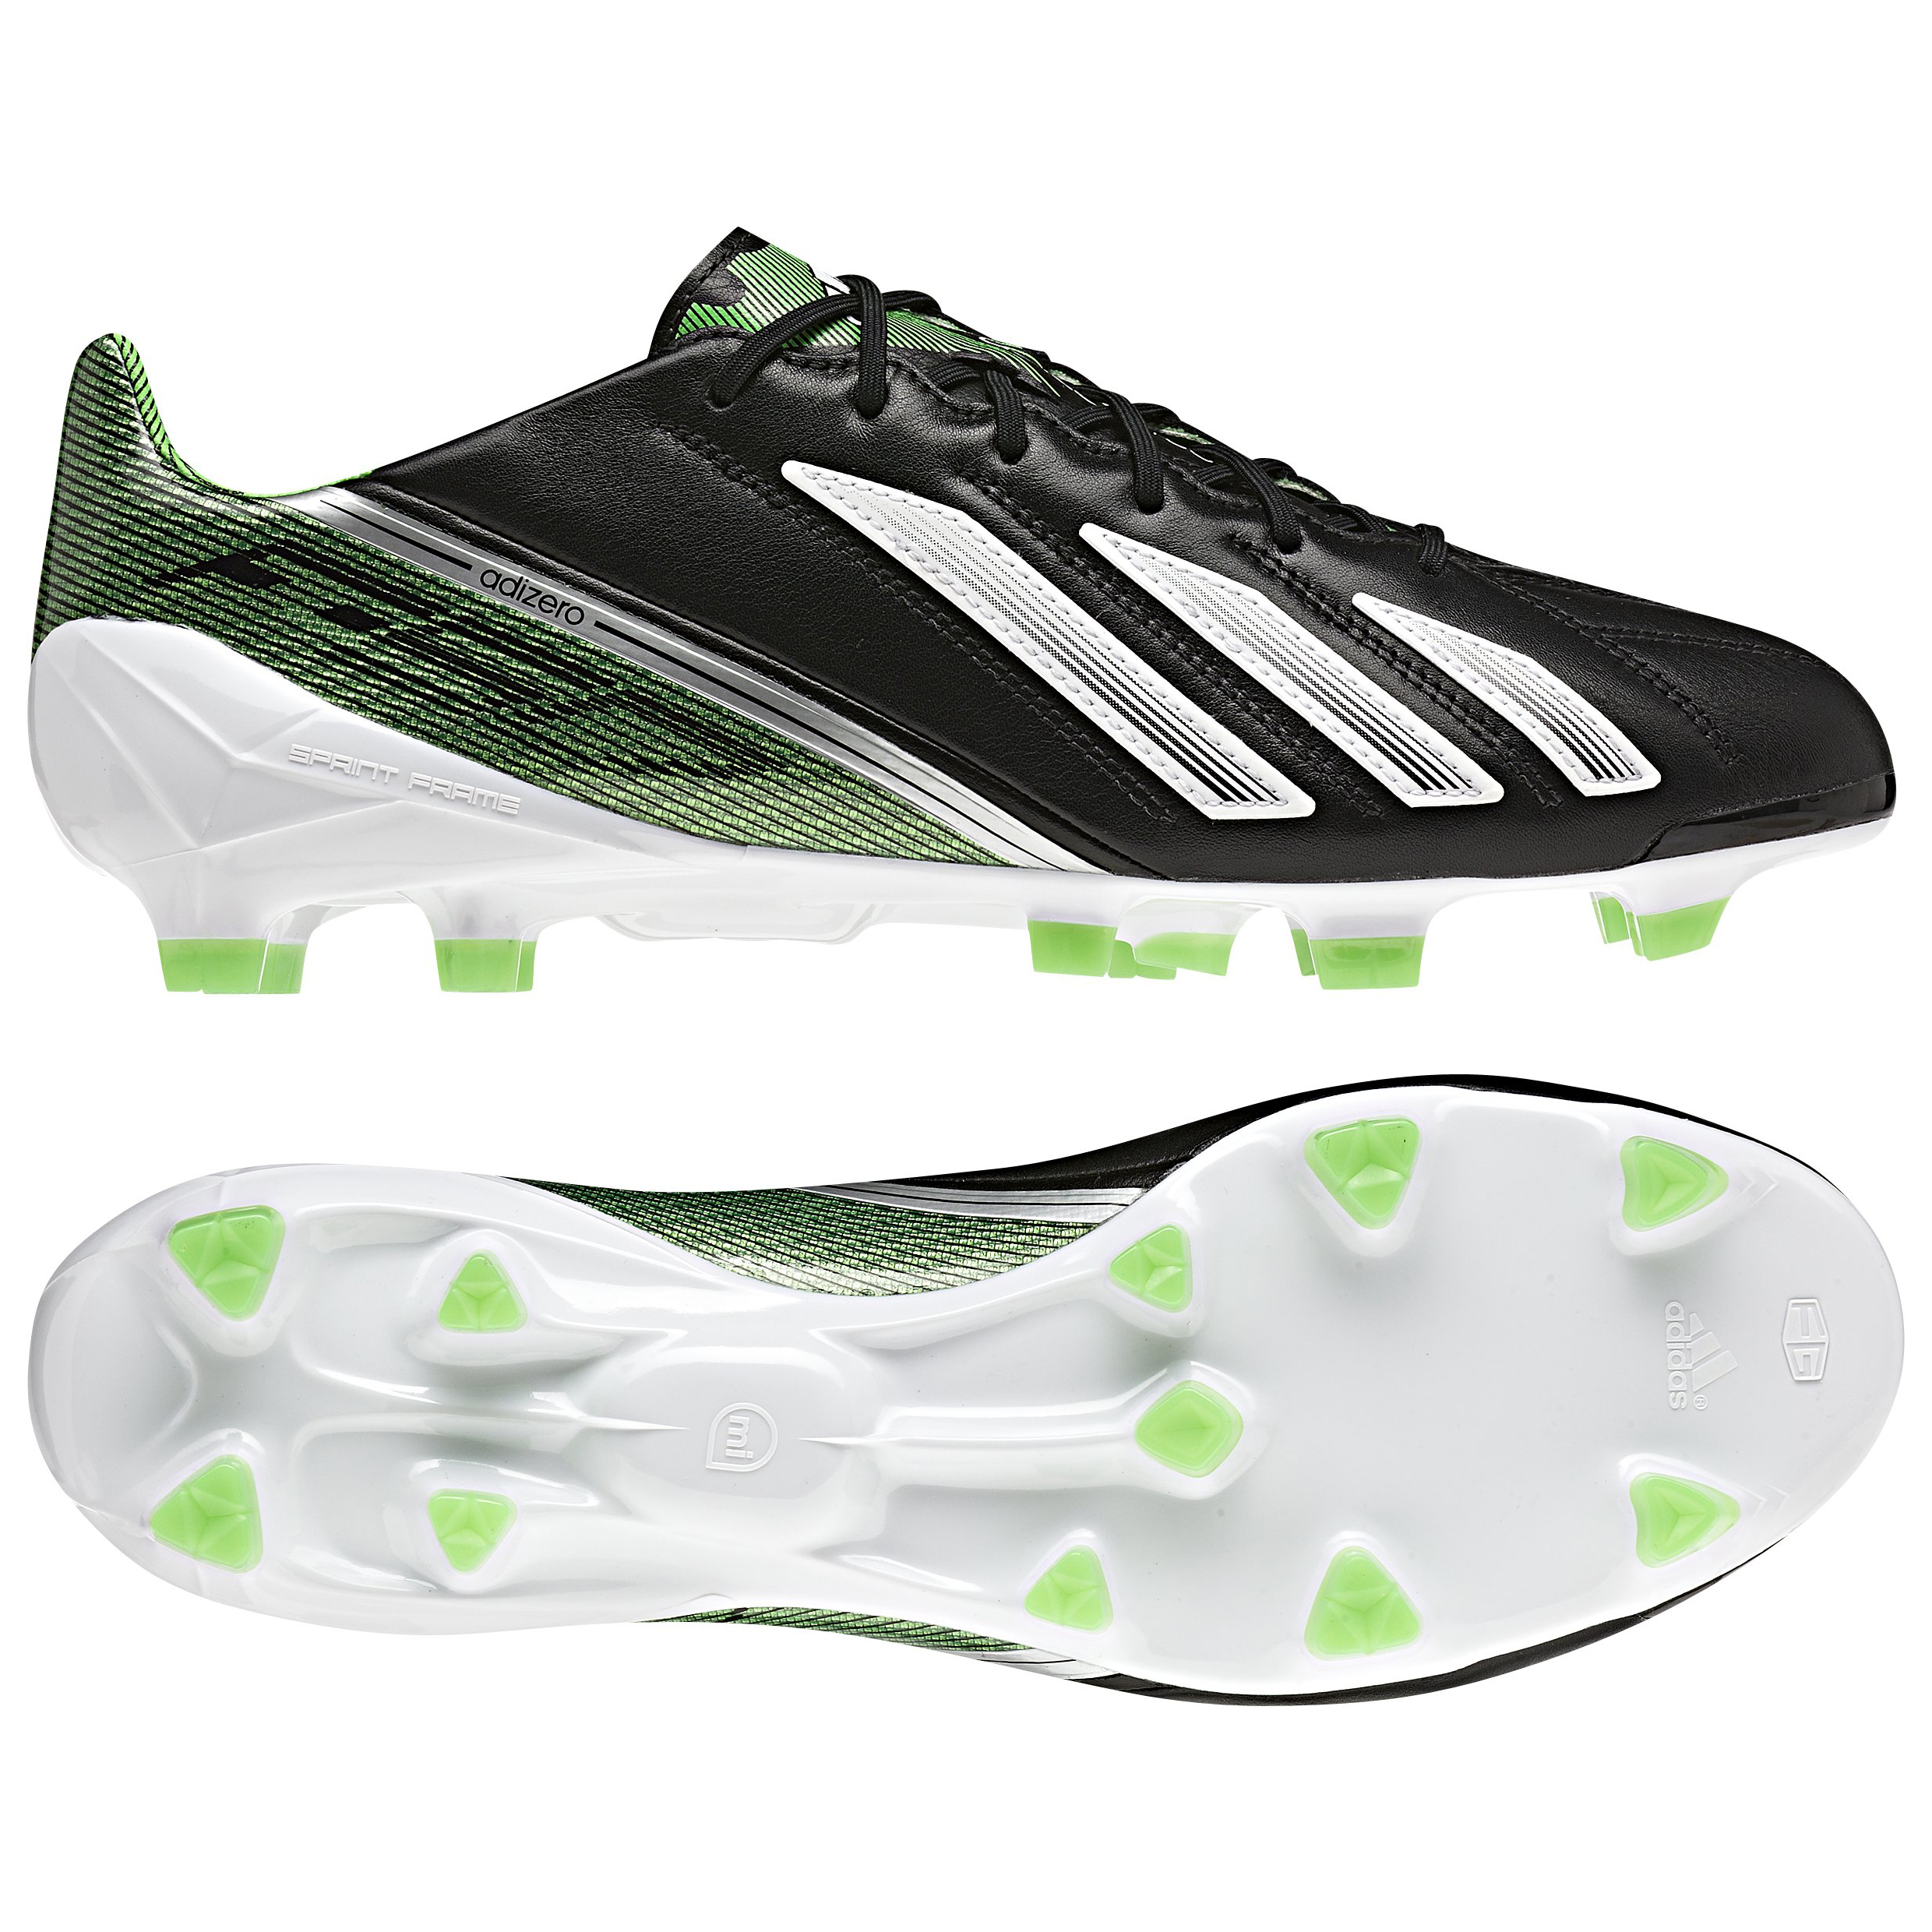 Adidas AdiZero F50 TRX Firm Ground Leather Football Boots - Black/White/Green Zest